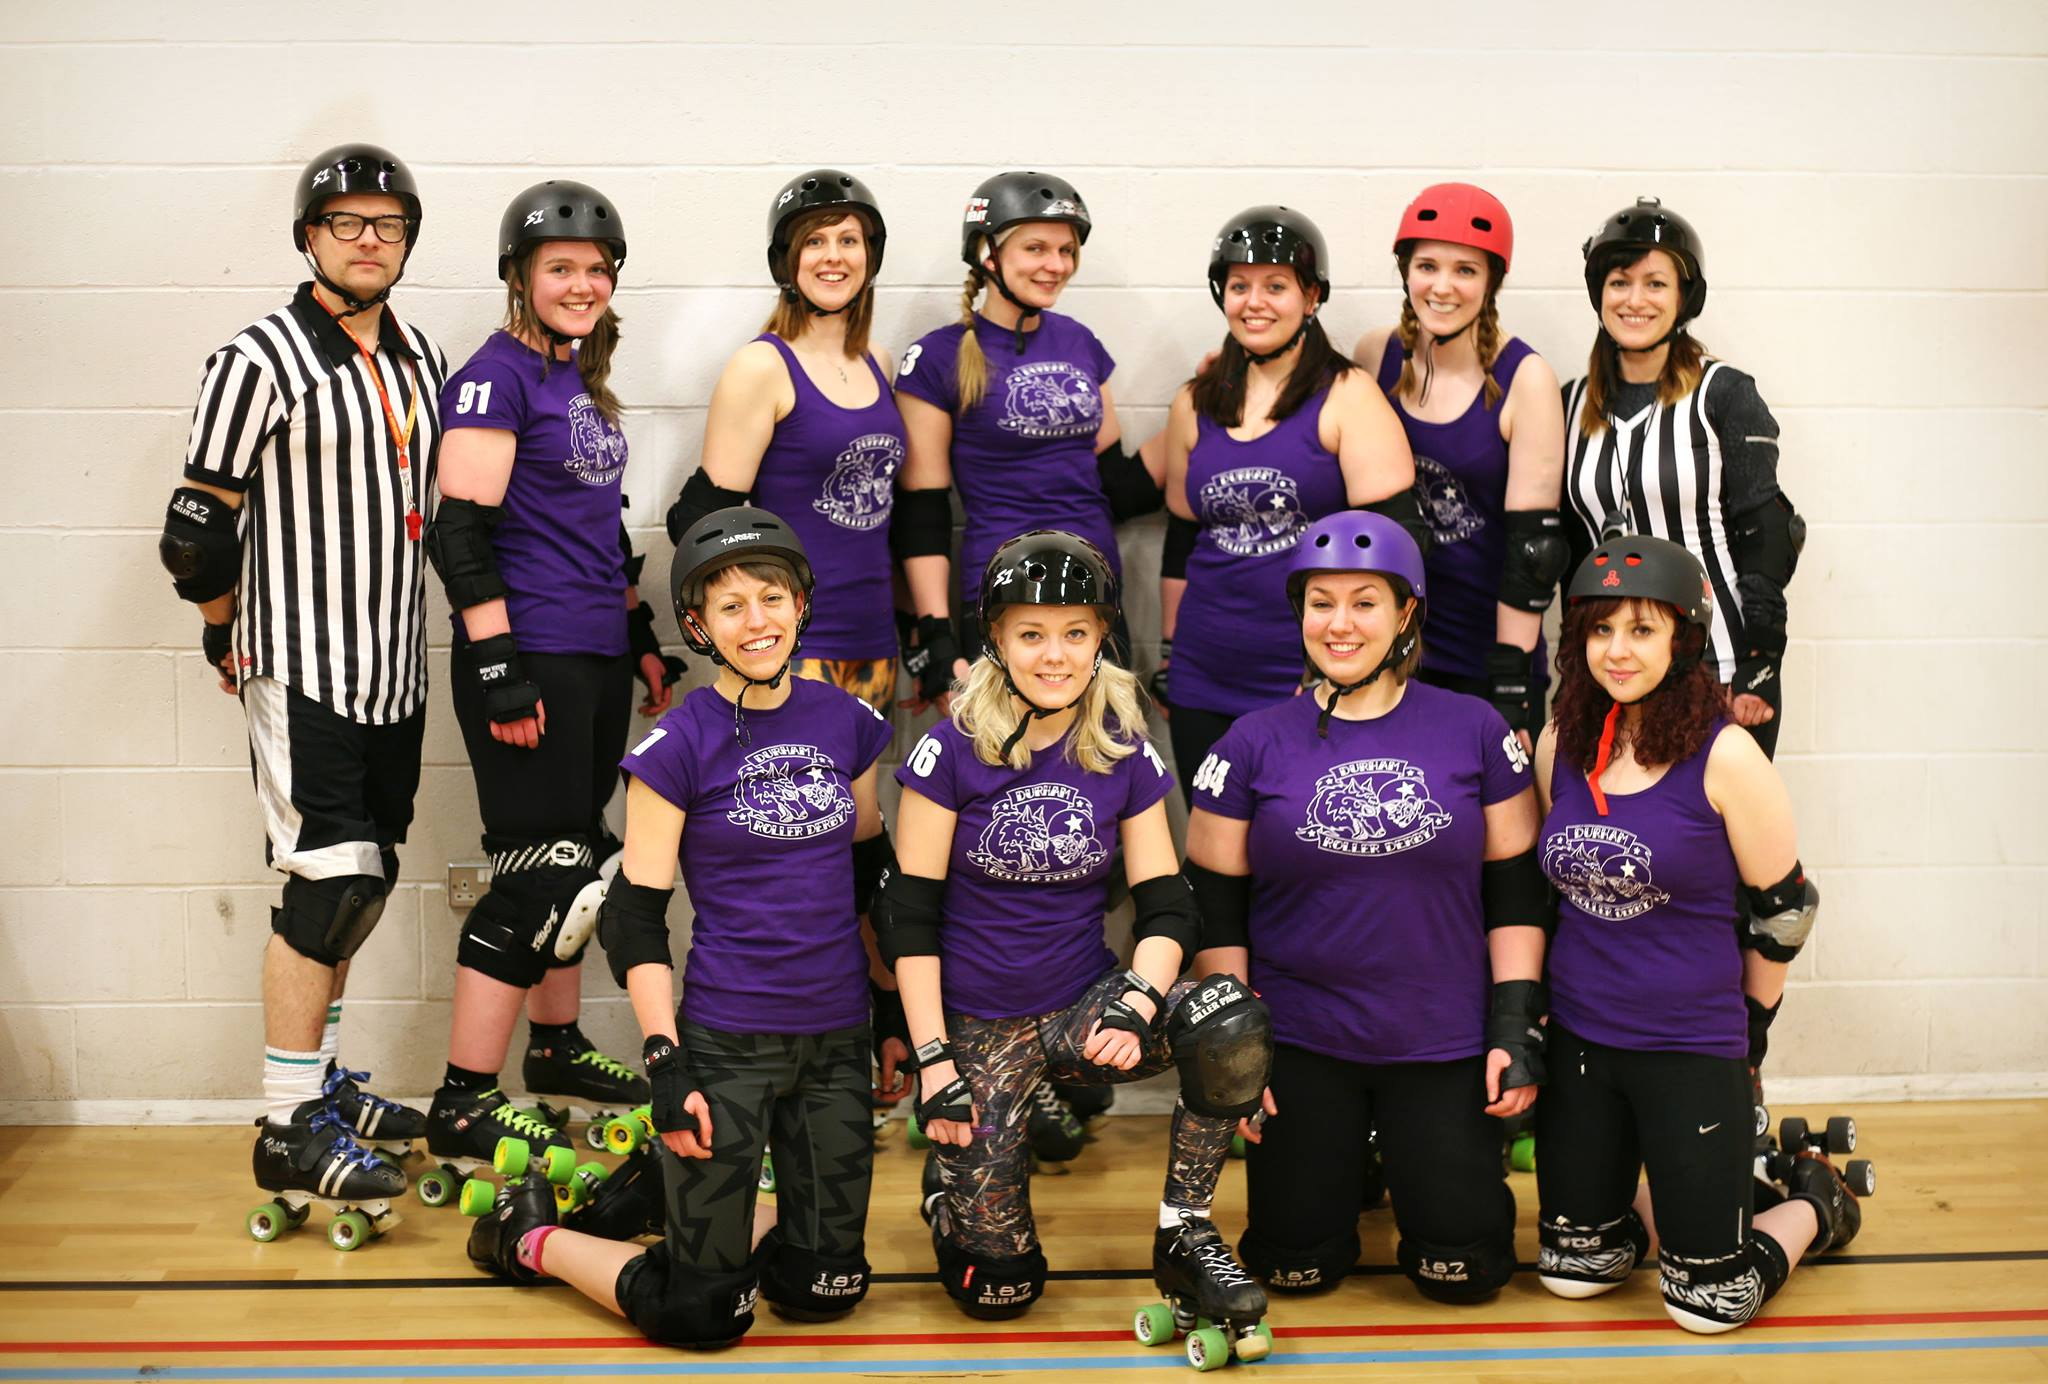 The Durham Roller Derby skaters!